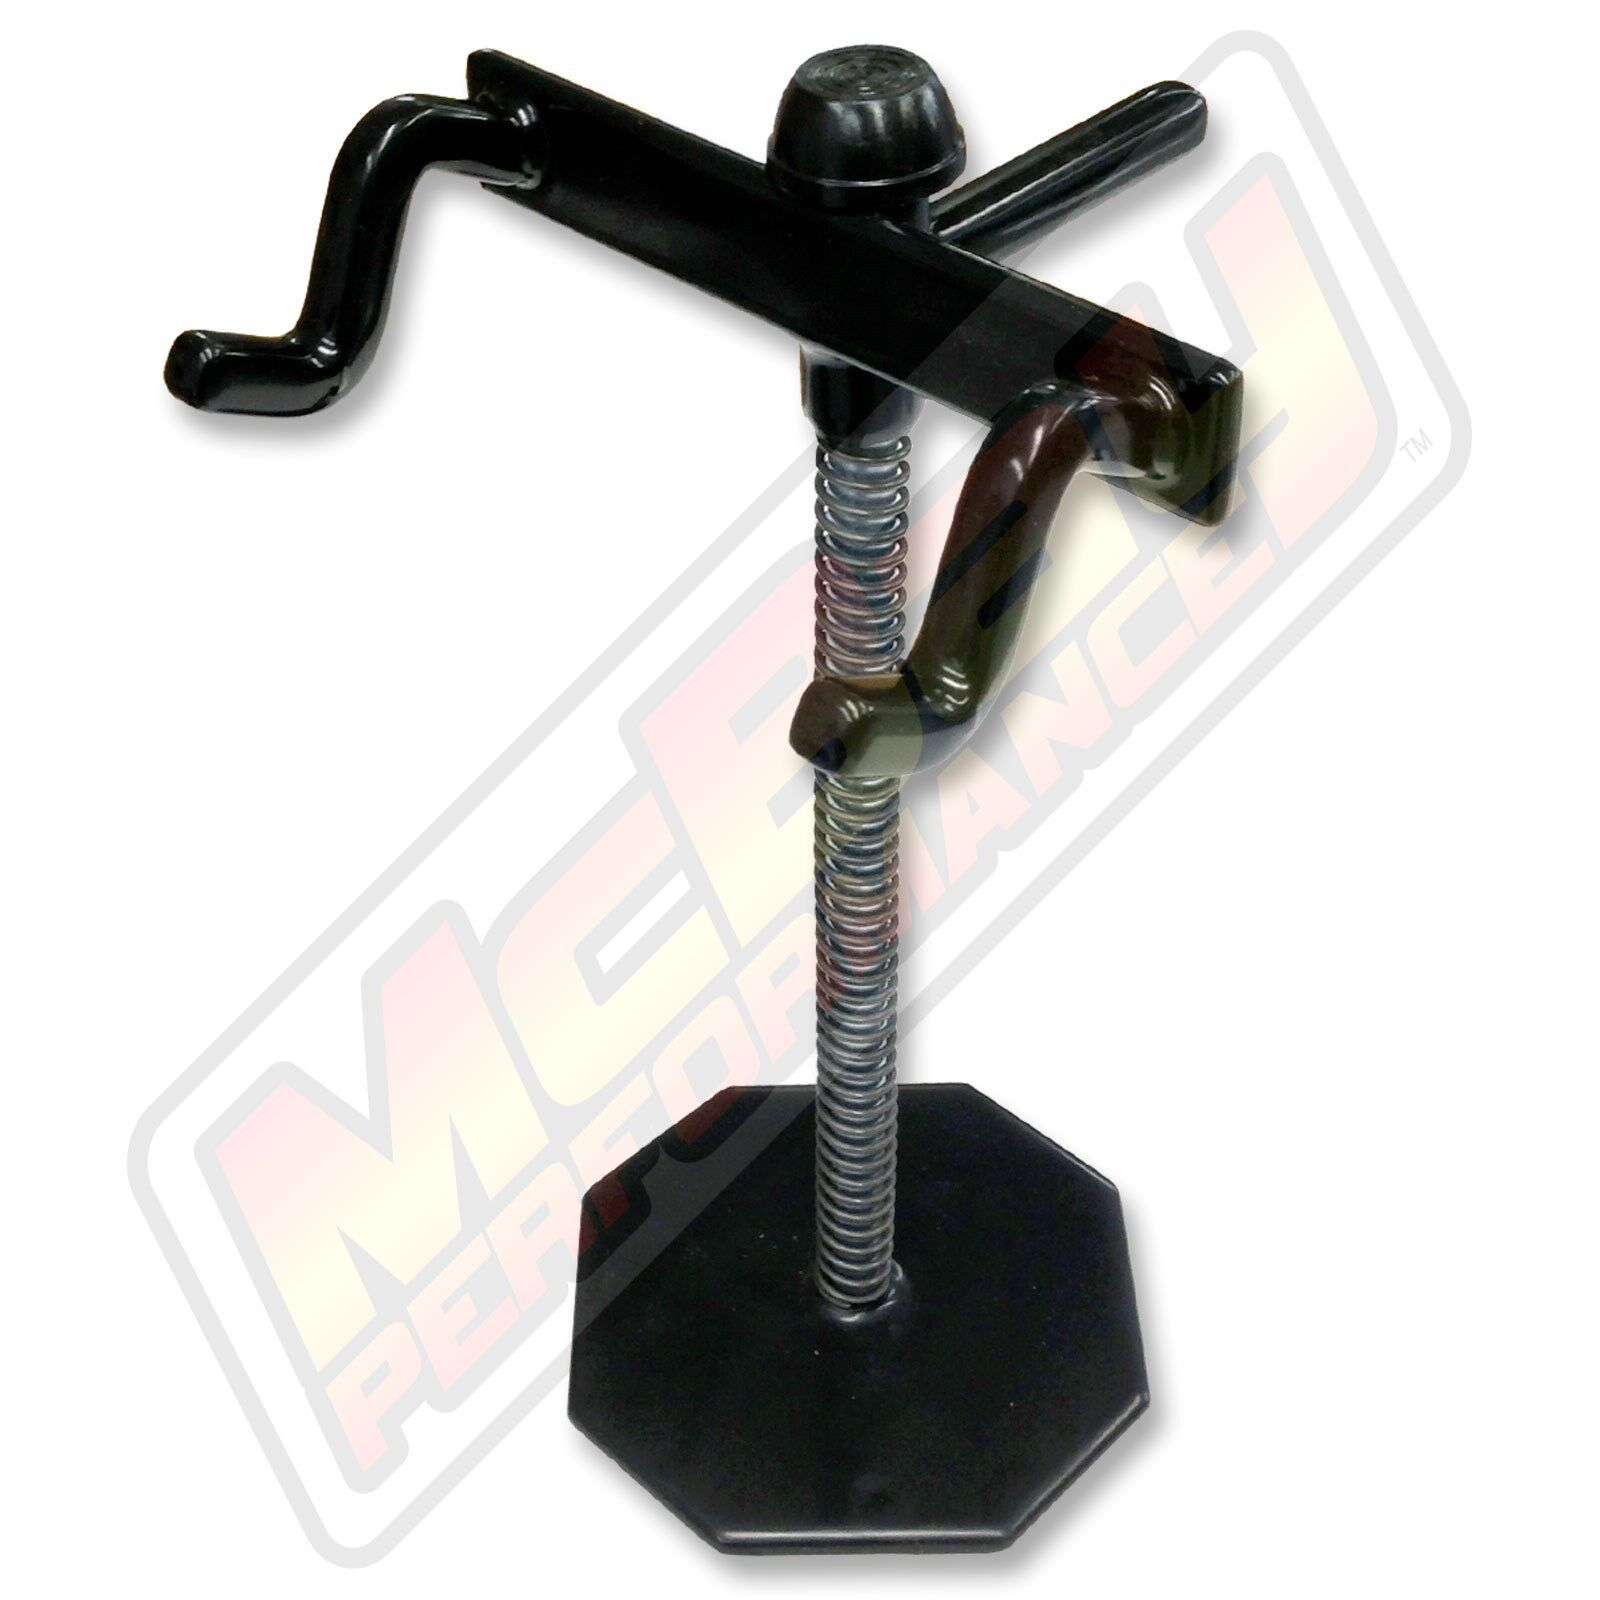 Pro Alignment Steering Wheel Holder Stand Tool For Car